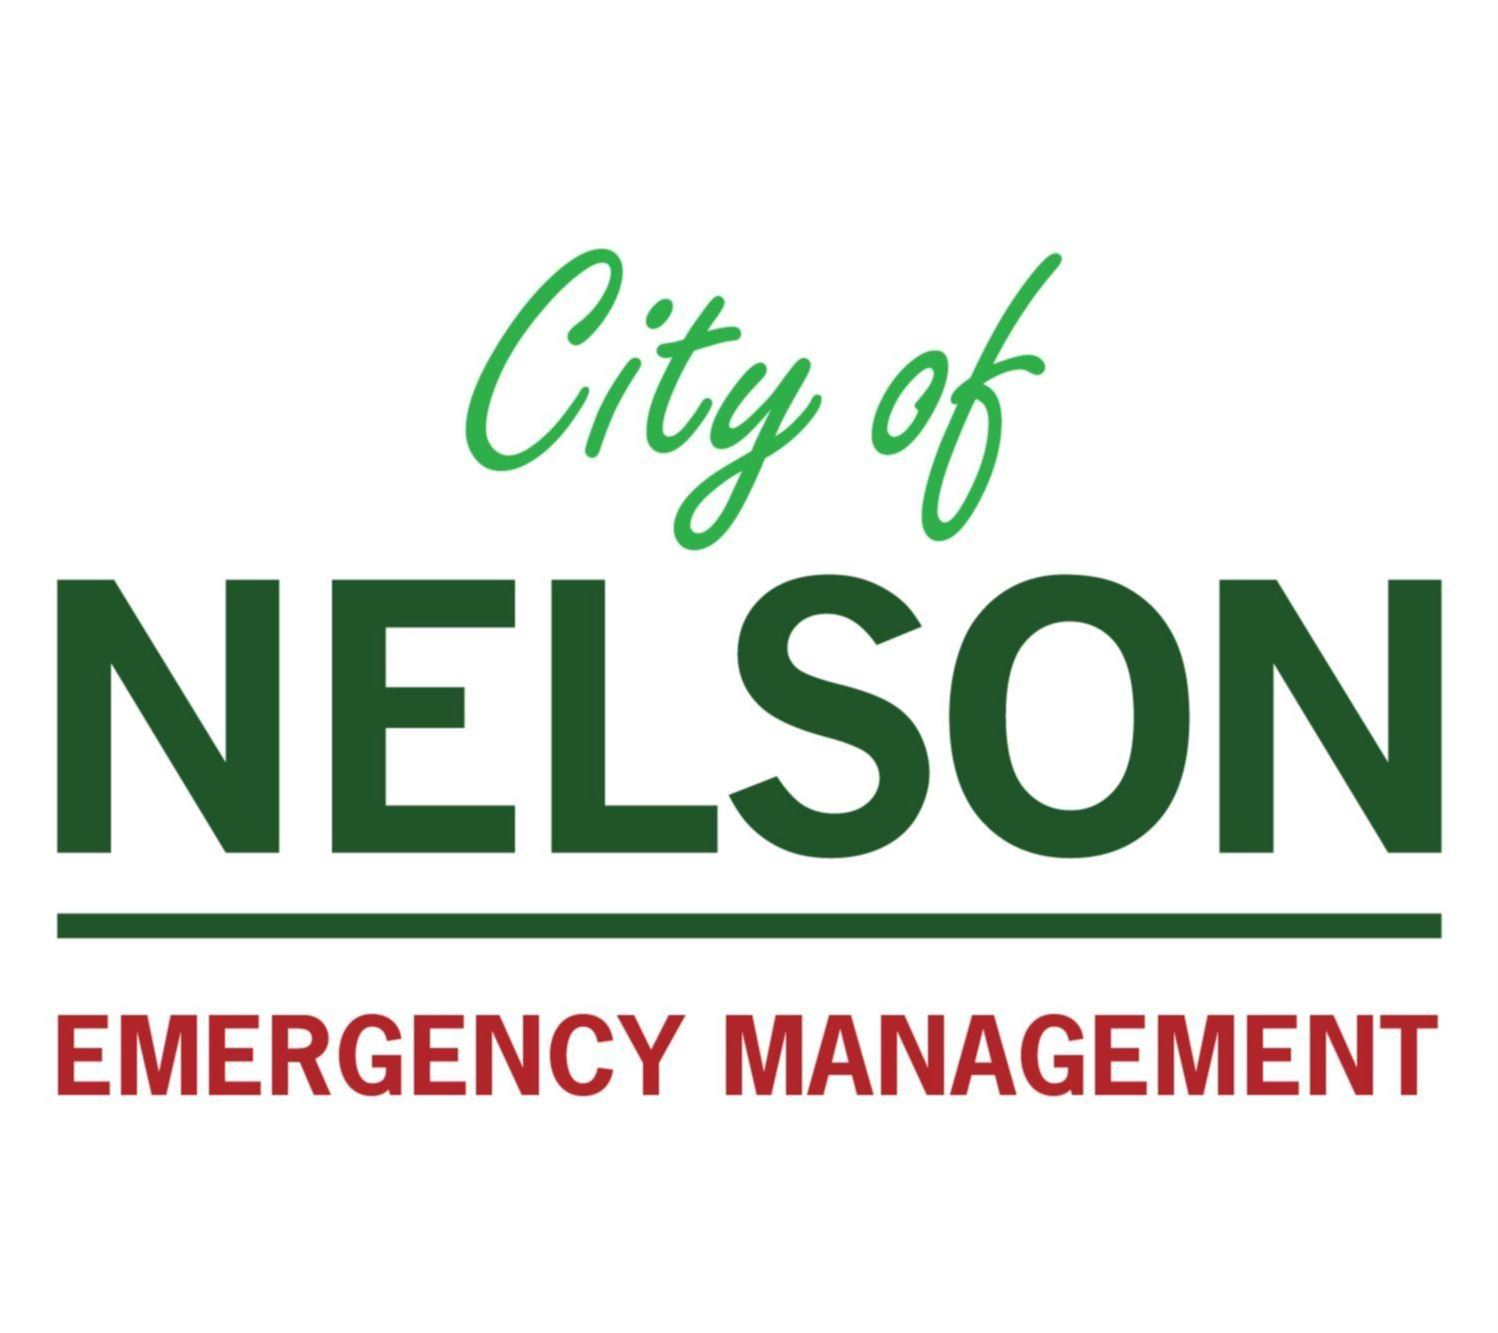 Nelson_City_EMERGENCY_MANAGEMENT_logos